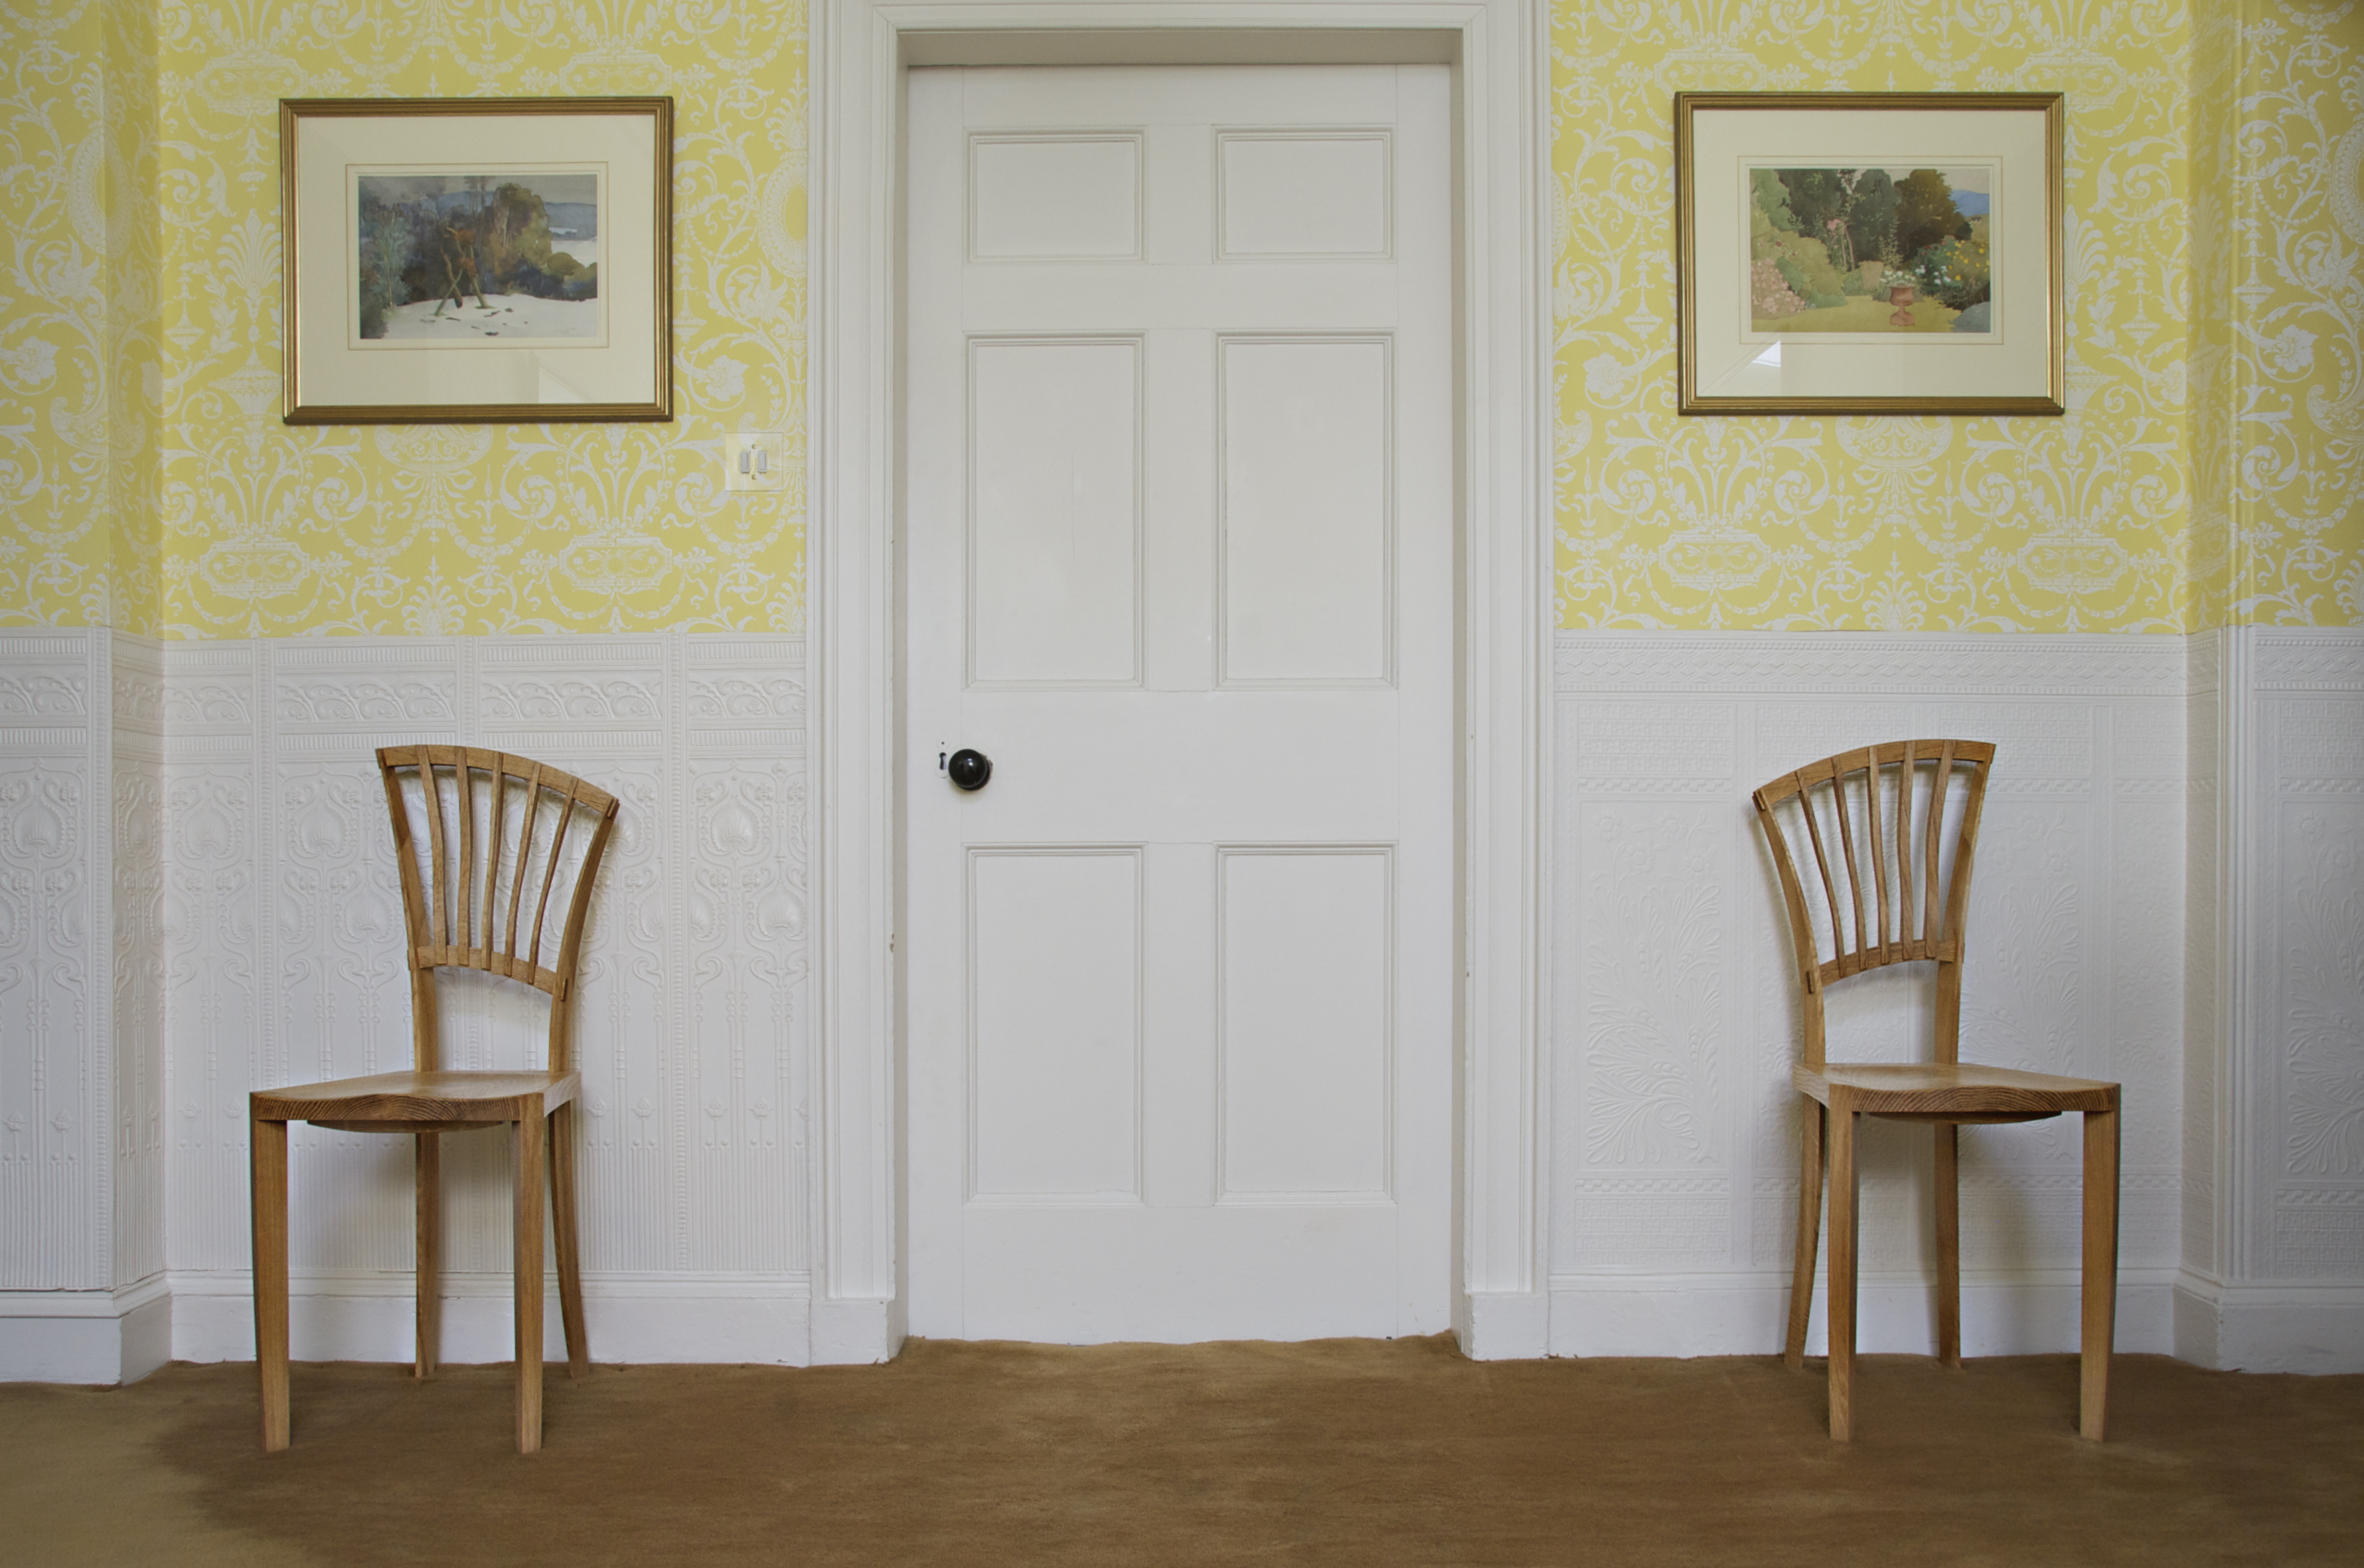 Mirror-matched occasional chairs in oak